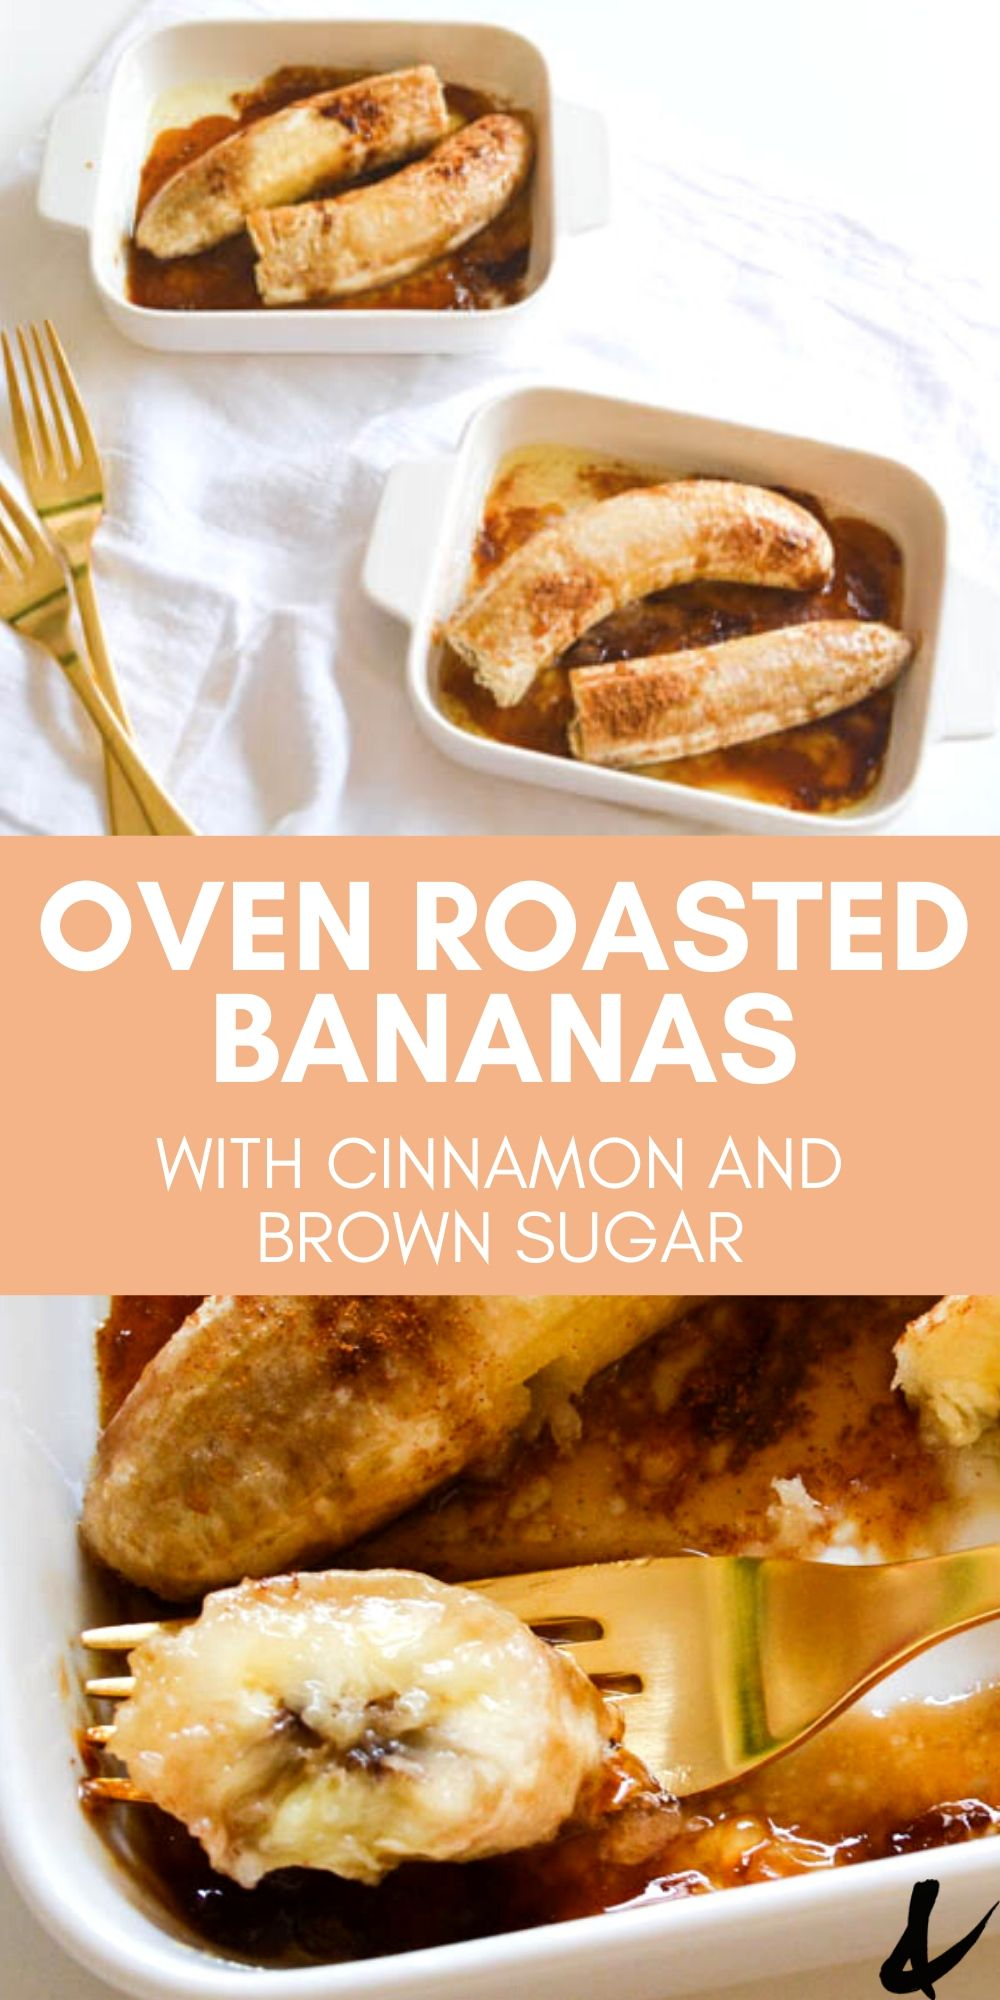 Delicious Baked Bananas With Brown Sugar Recipe Roasted Banana Baked Banana Vegan Recipes Easy